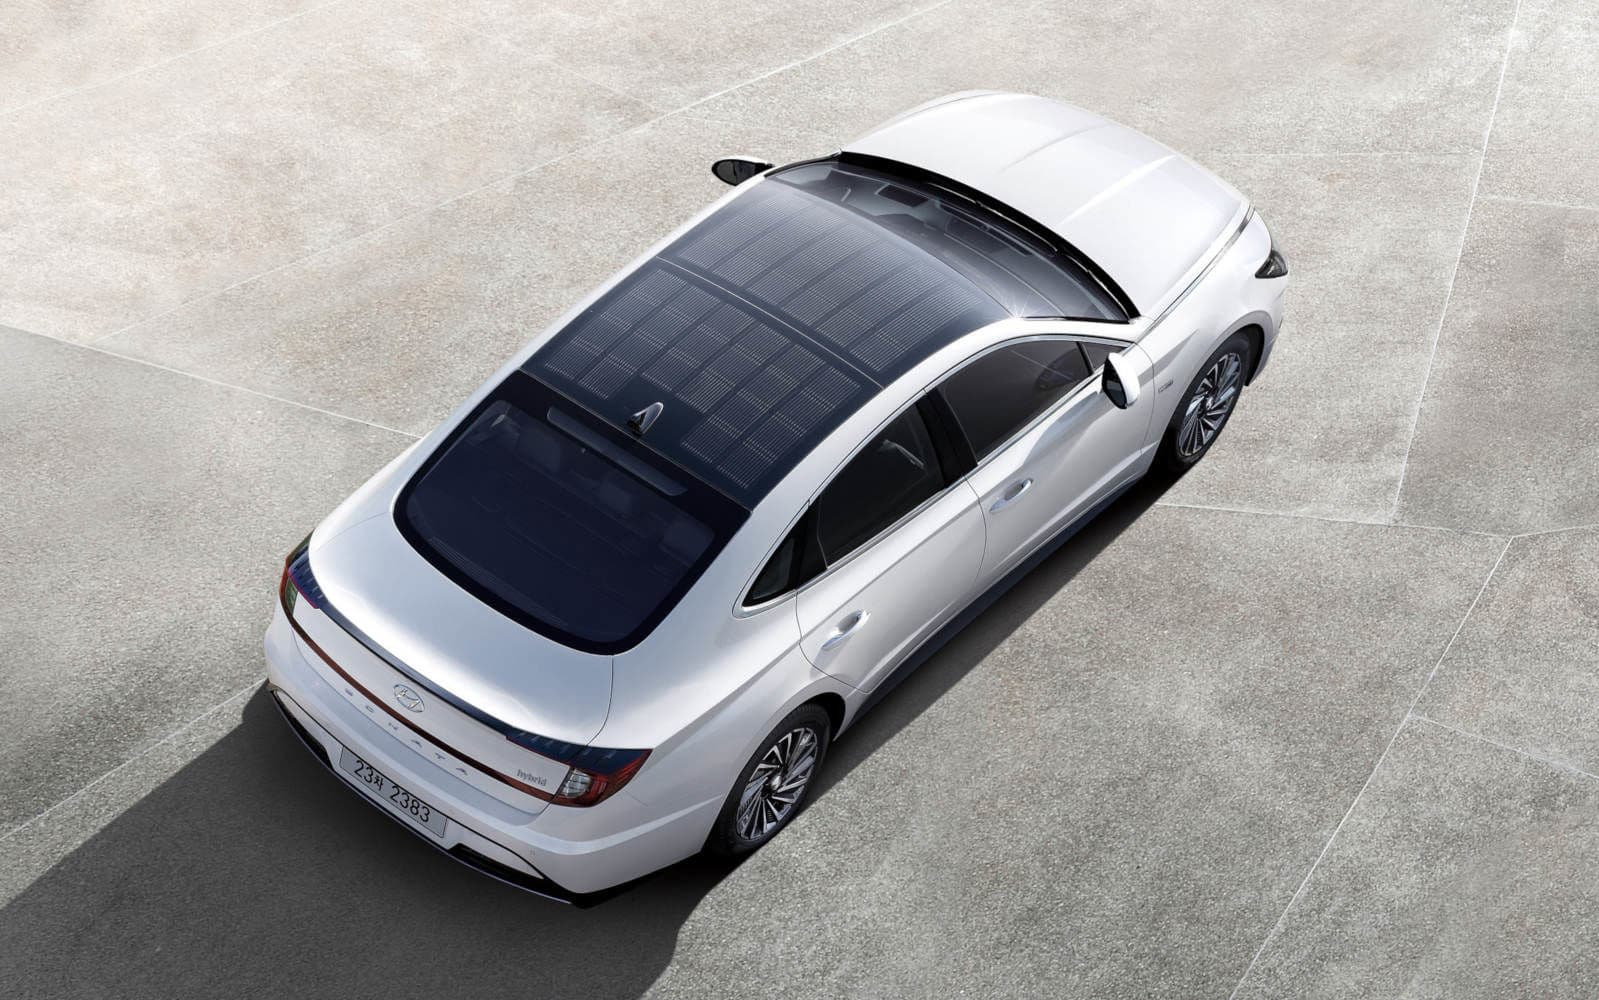 Hyundai's first car with a solar roof is available in Korea